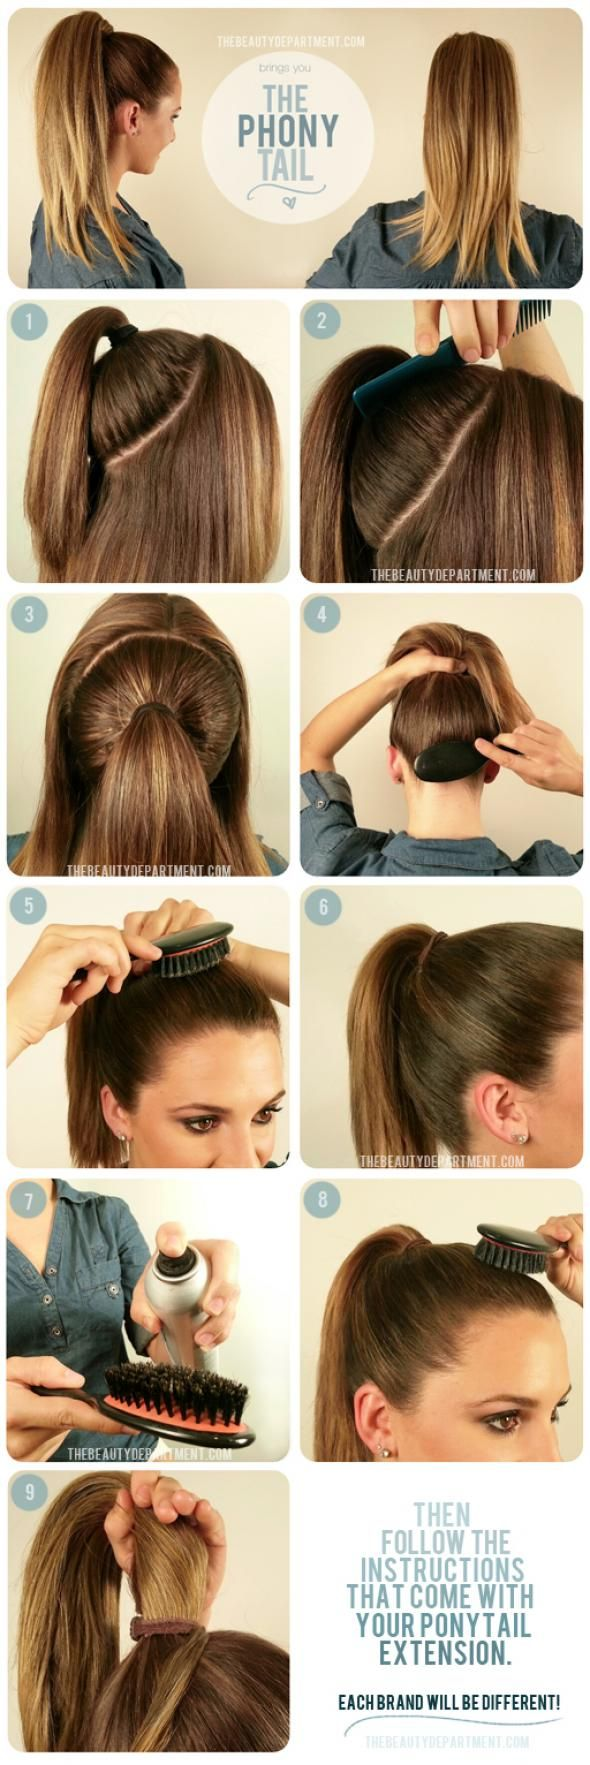 Wow, this makes the hair even more volumized without using any products.. I wanna try this bad :D